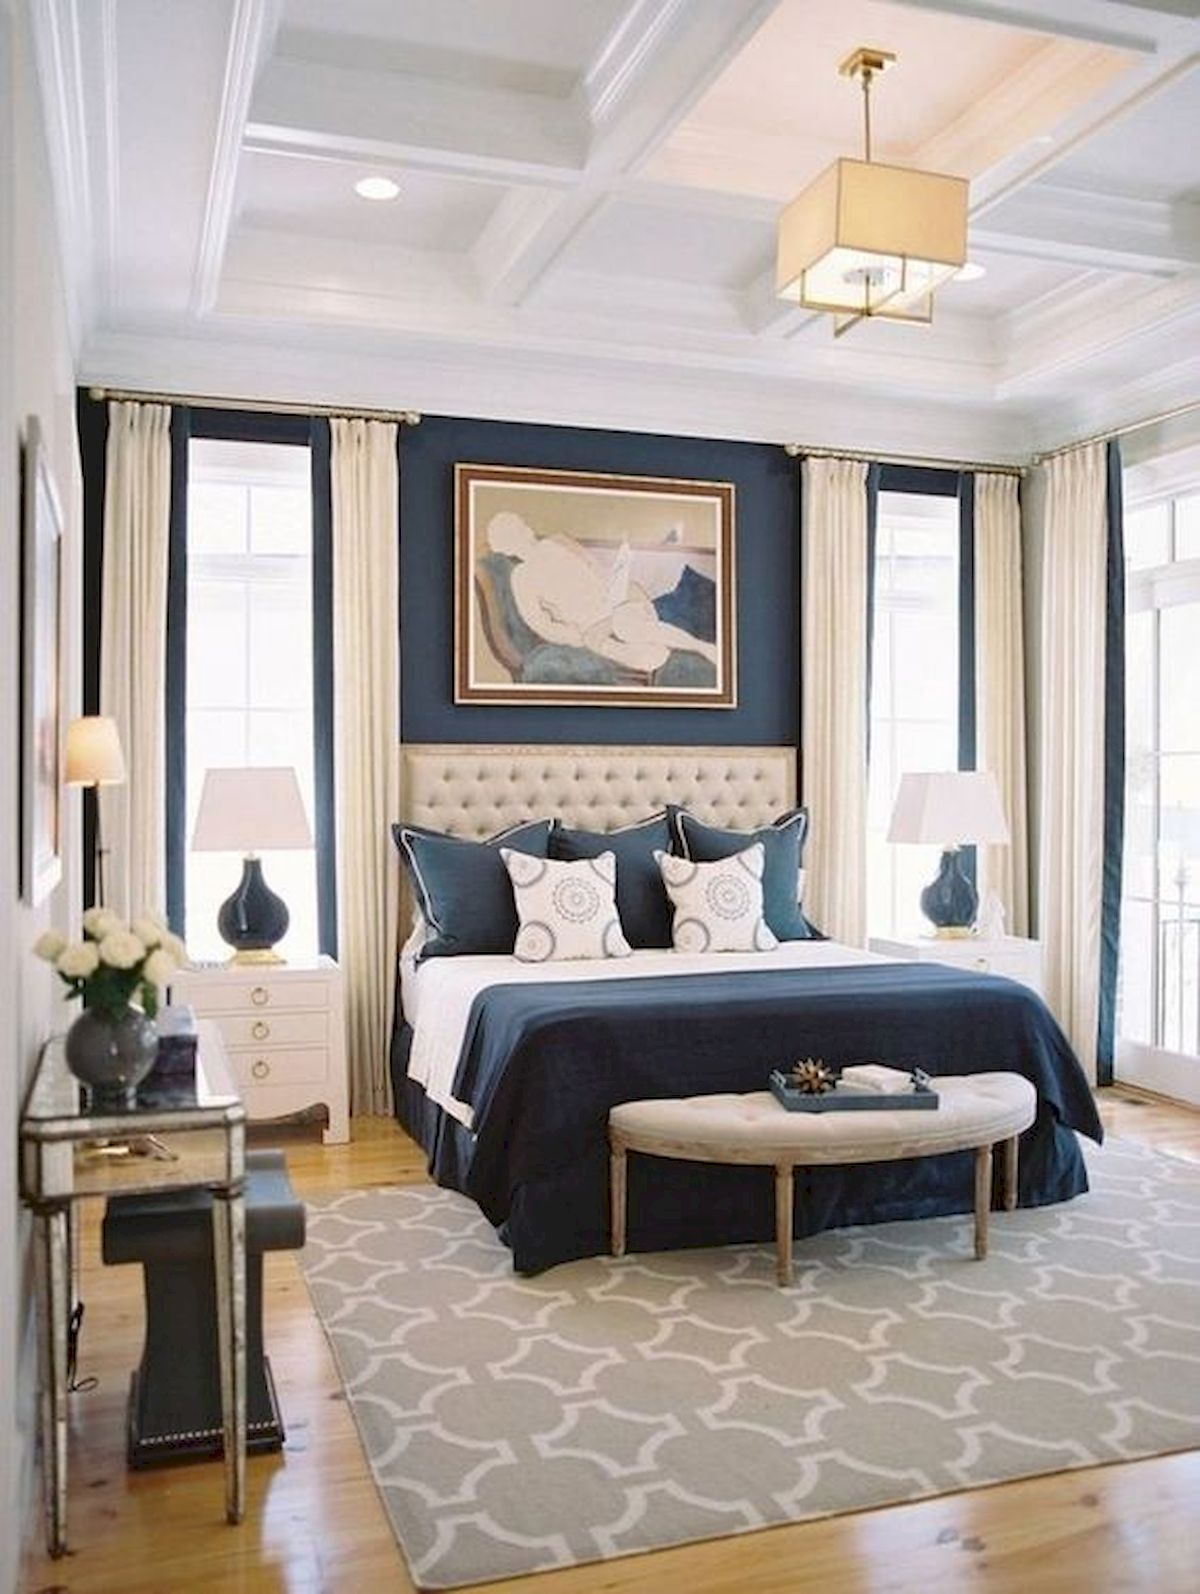 40 Incredible Modern Bedroom Design Ideas That Will Be Relax Place (29)